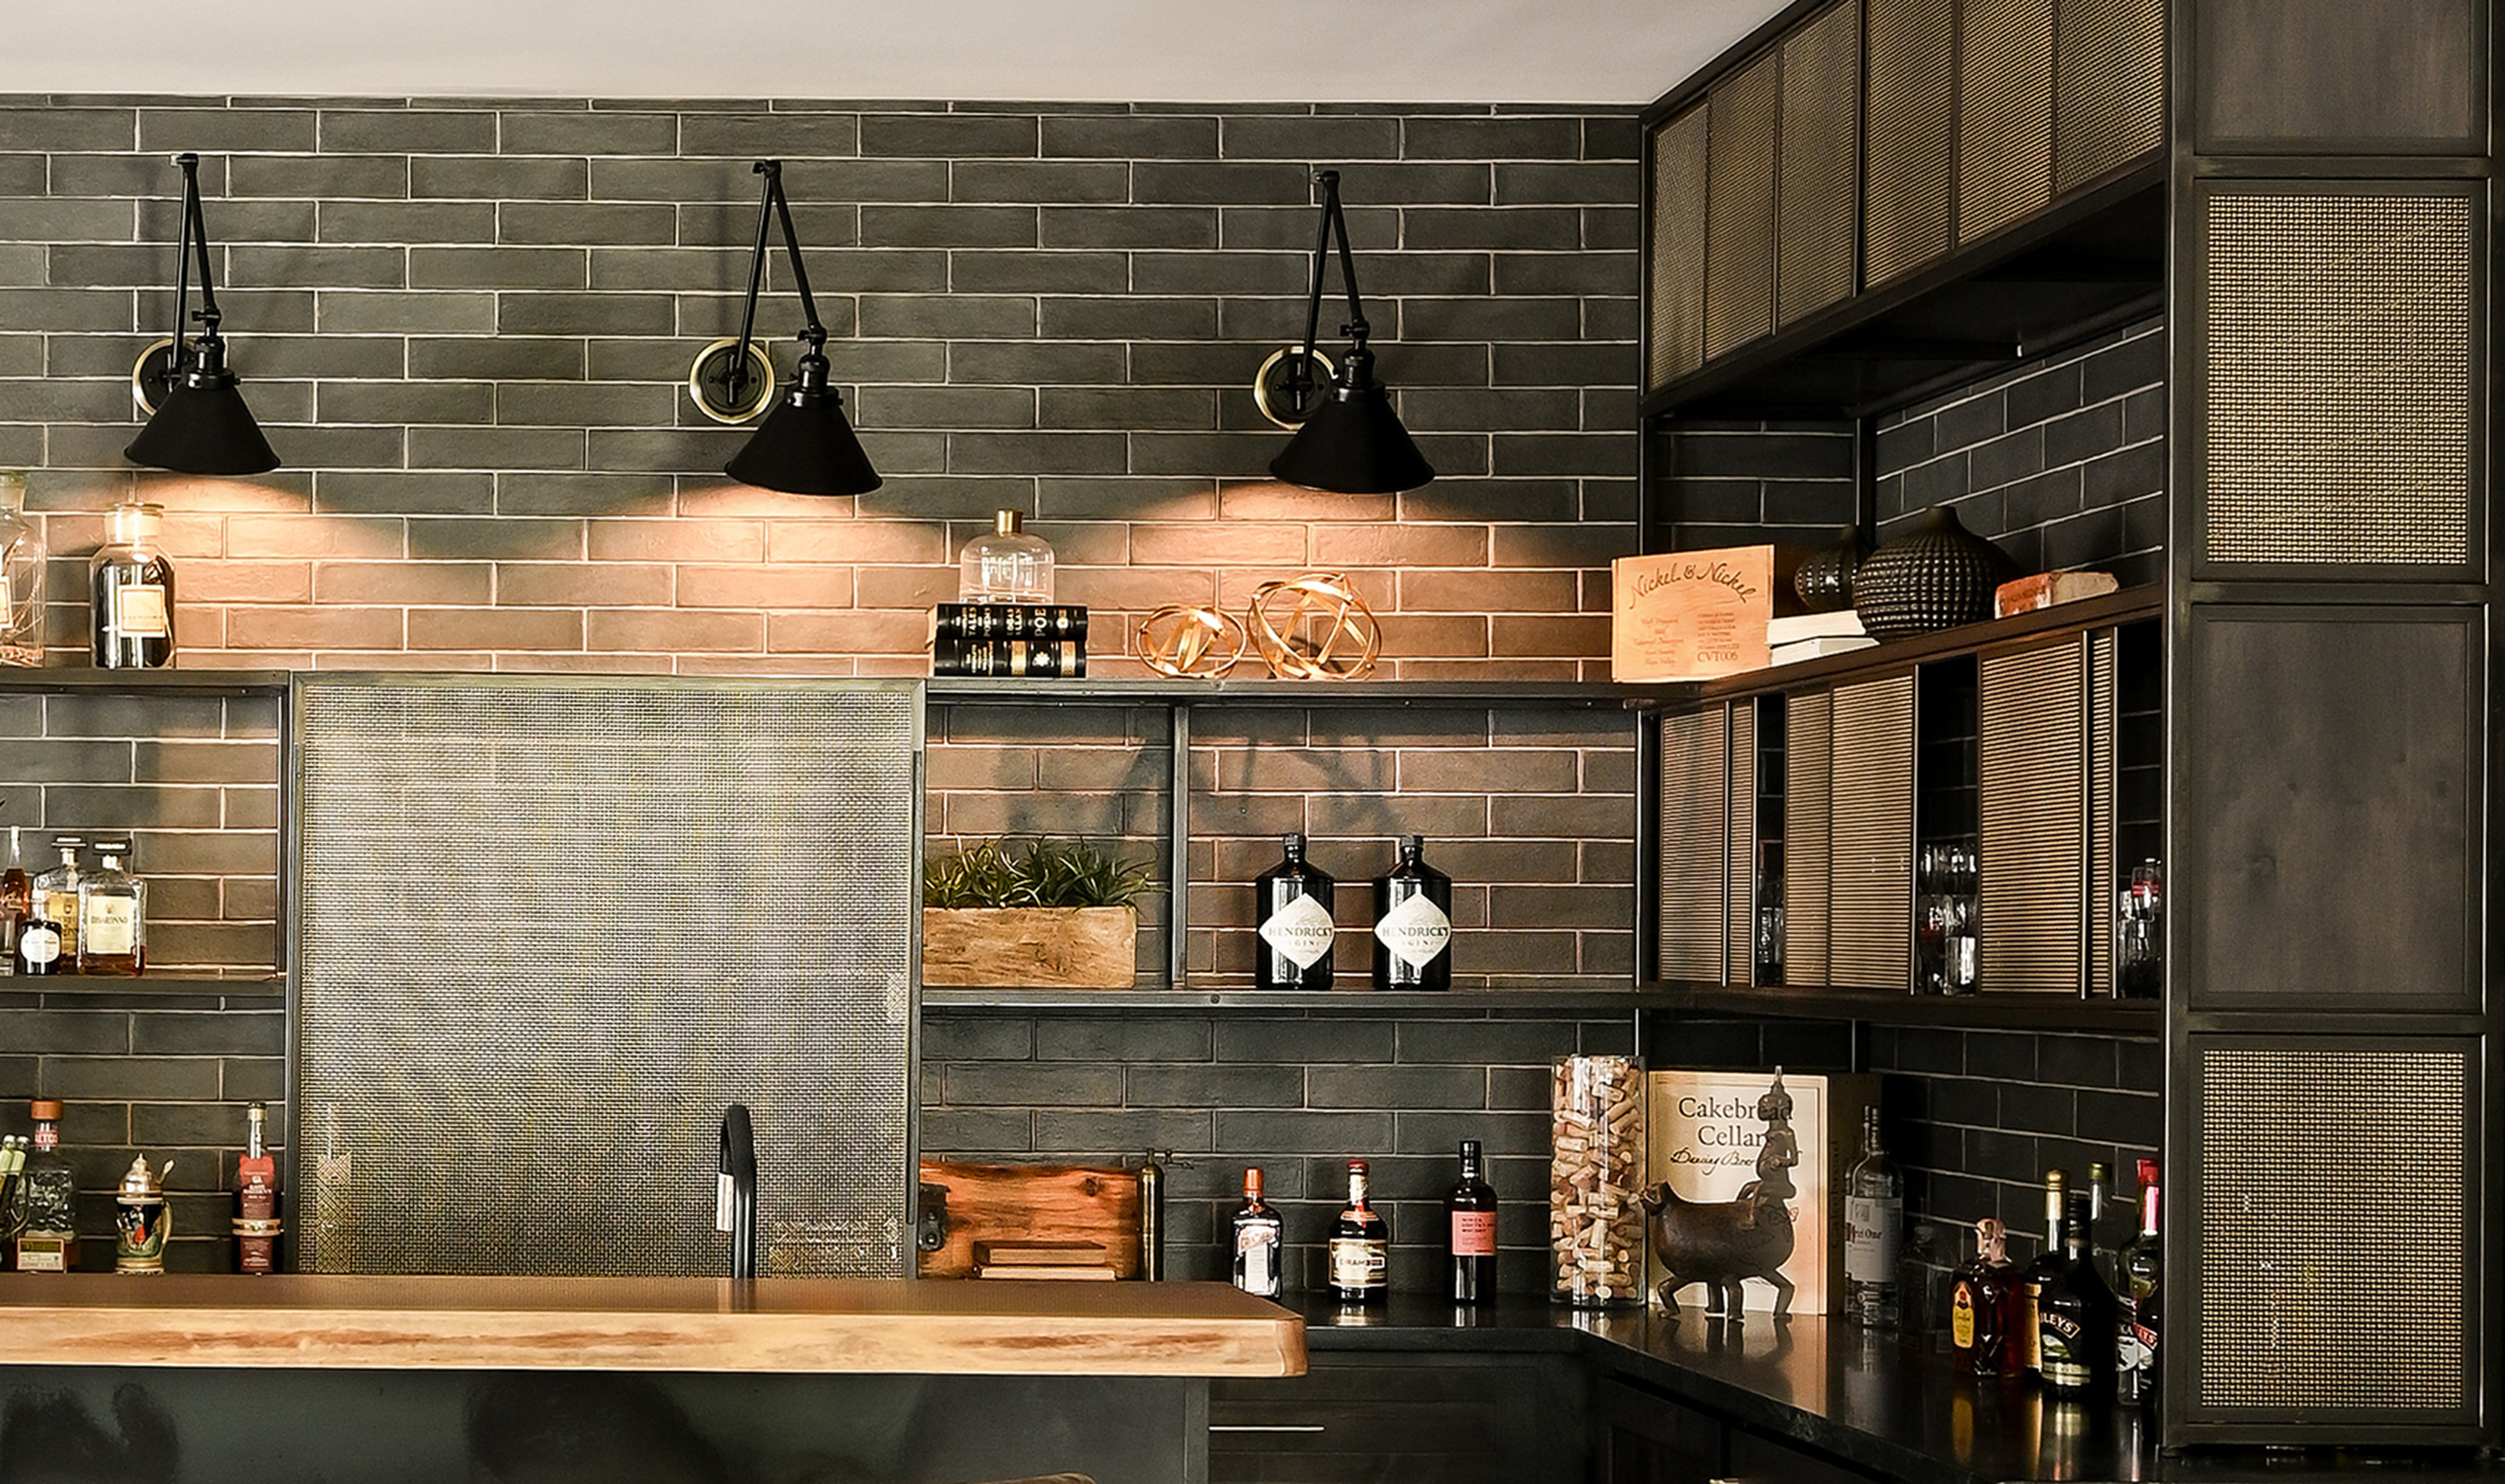 Woven wire mesh pattern S-12 creates a reflective surface to enhance the lighting in the game room bar.